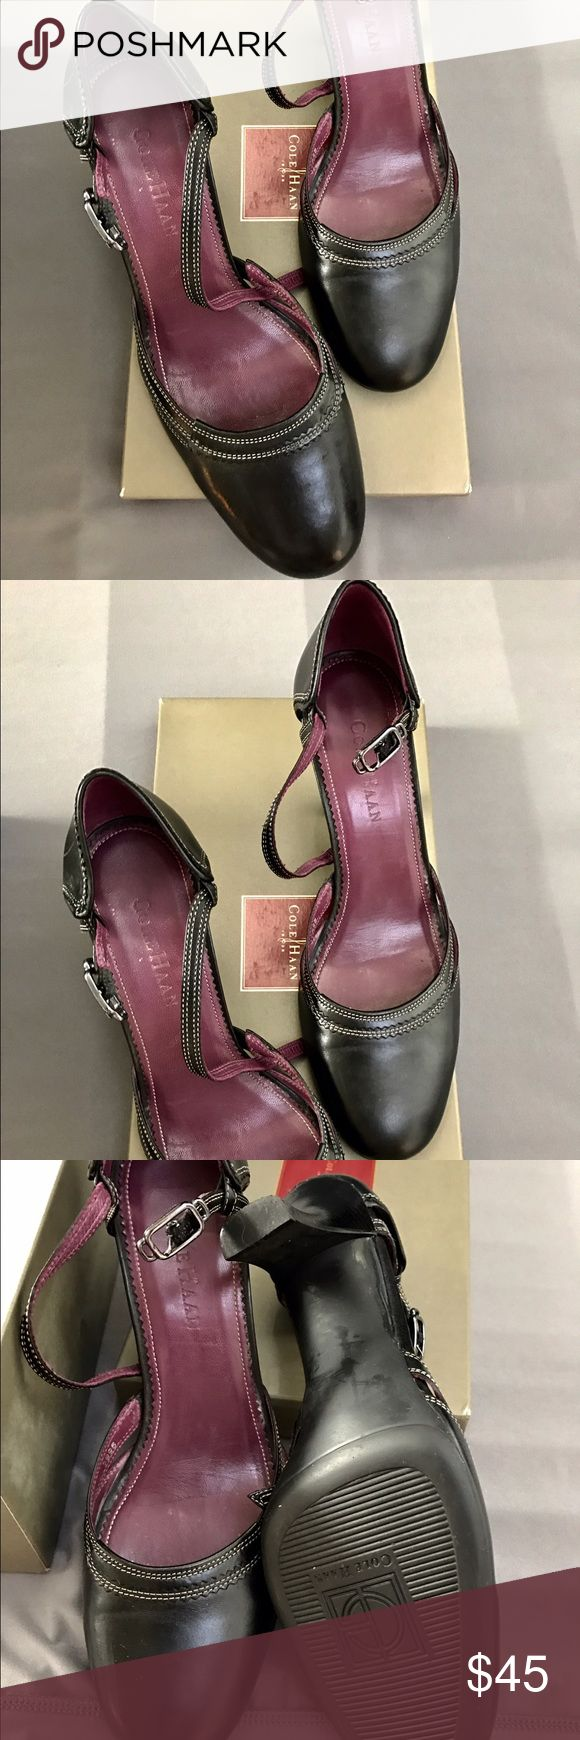 Cole Haan Mary Janes Worn a 1-2 times. Classic Mary Jane style with stitching. Cole Haan Shoes Heels